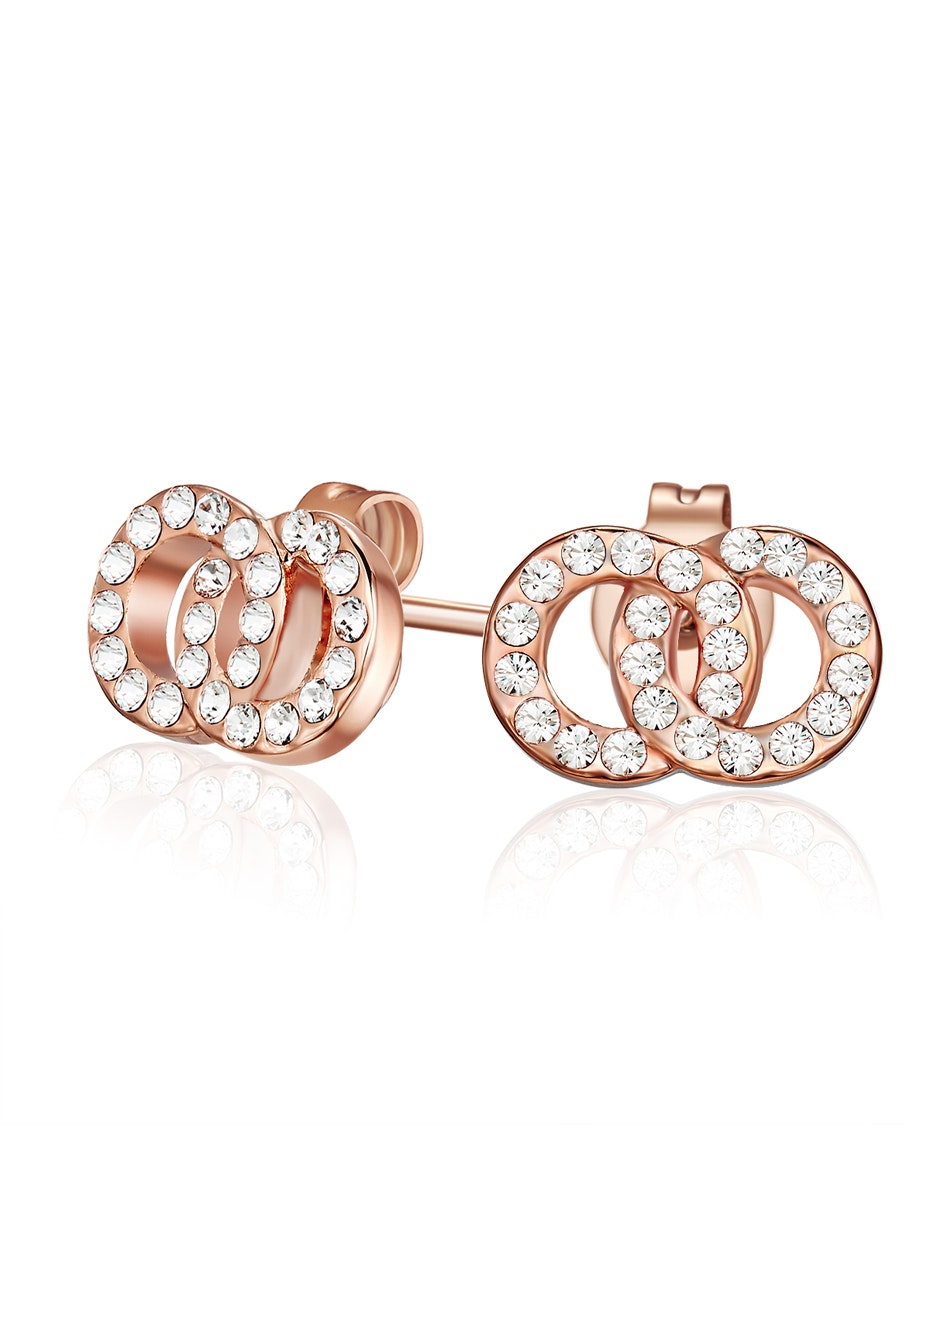 Interlinked Earrings Embellished with Crystals from Swarovski -Rose Gold